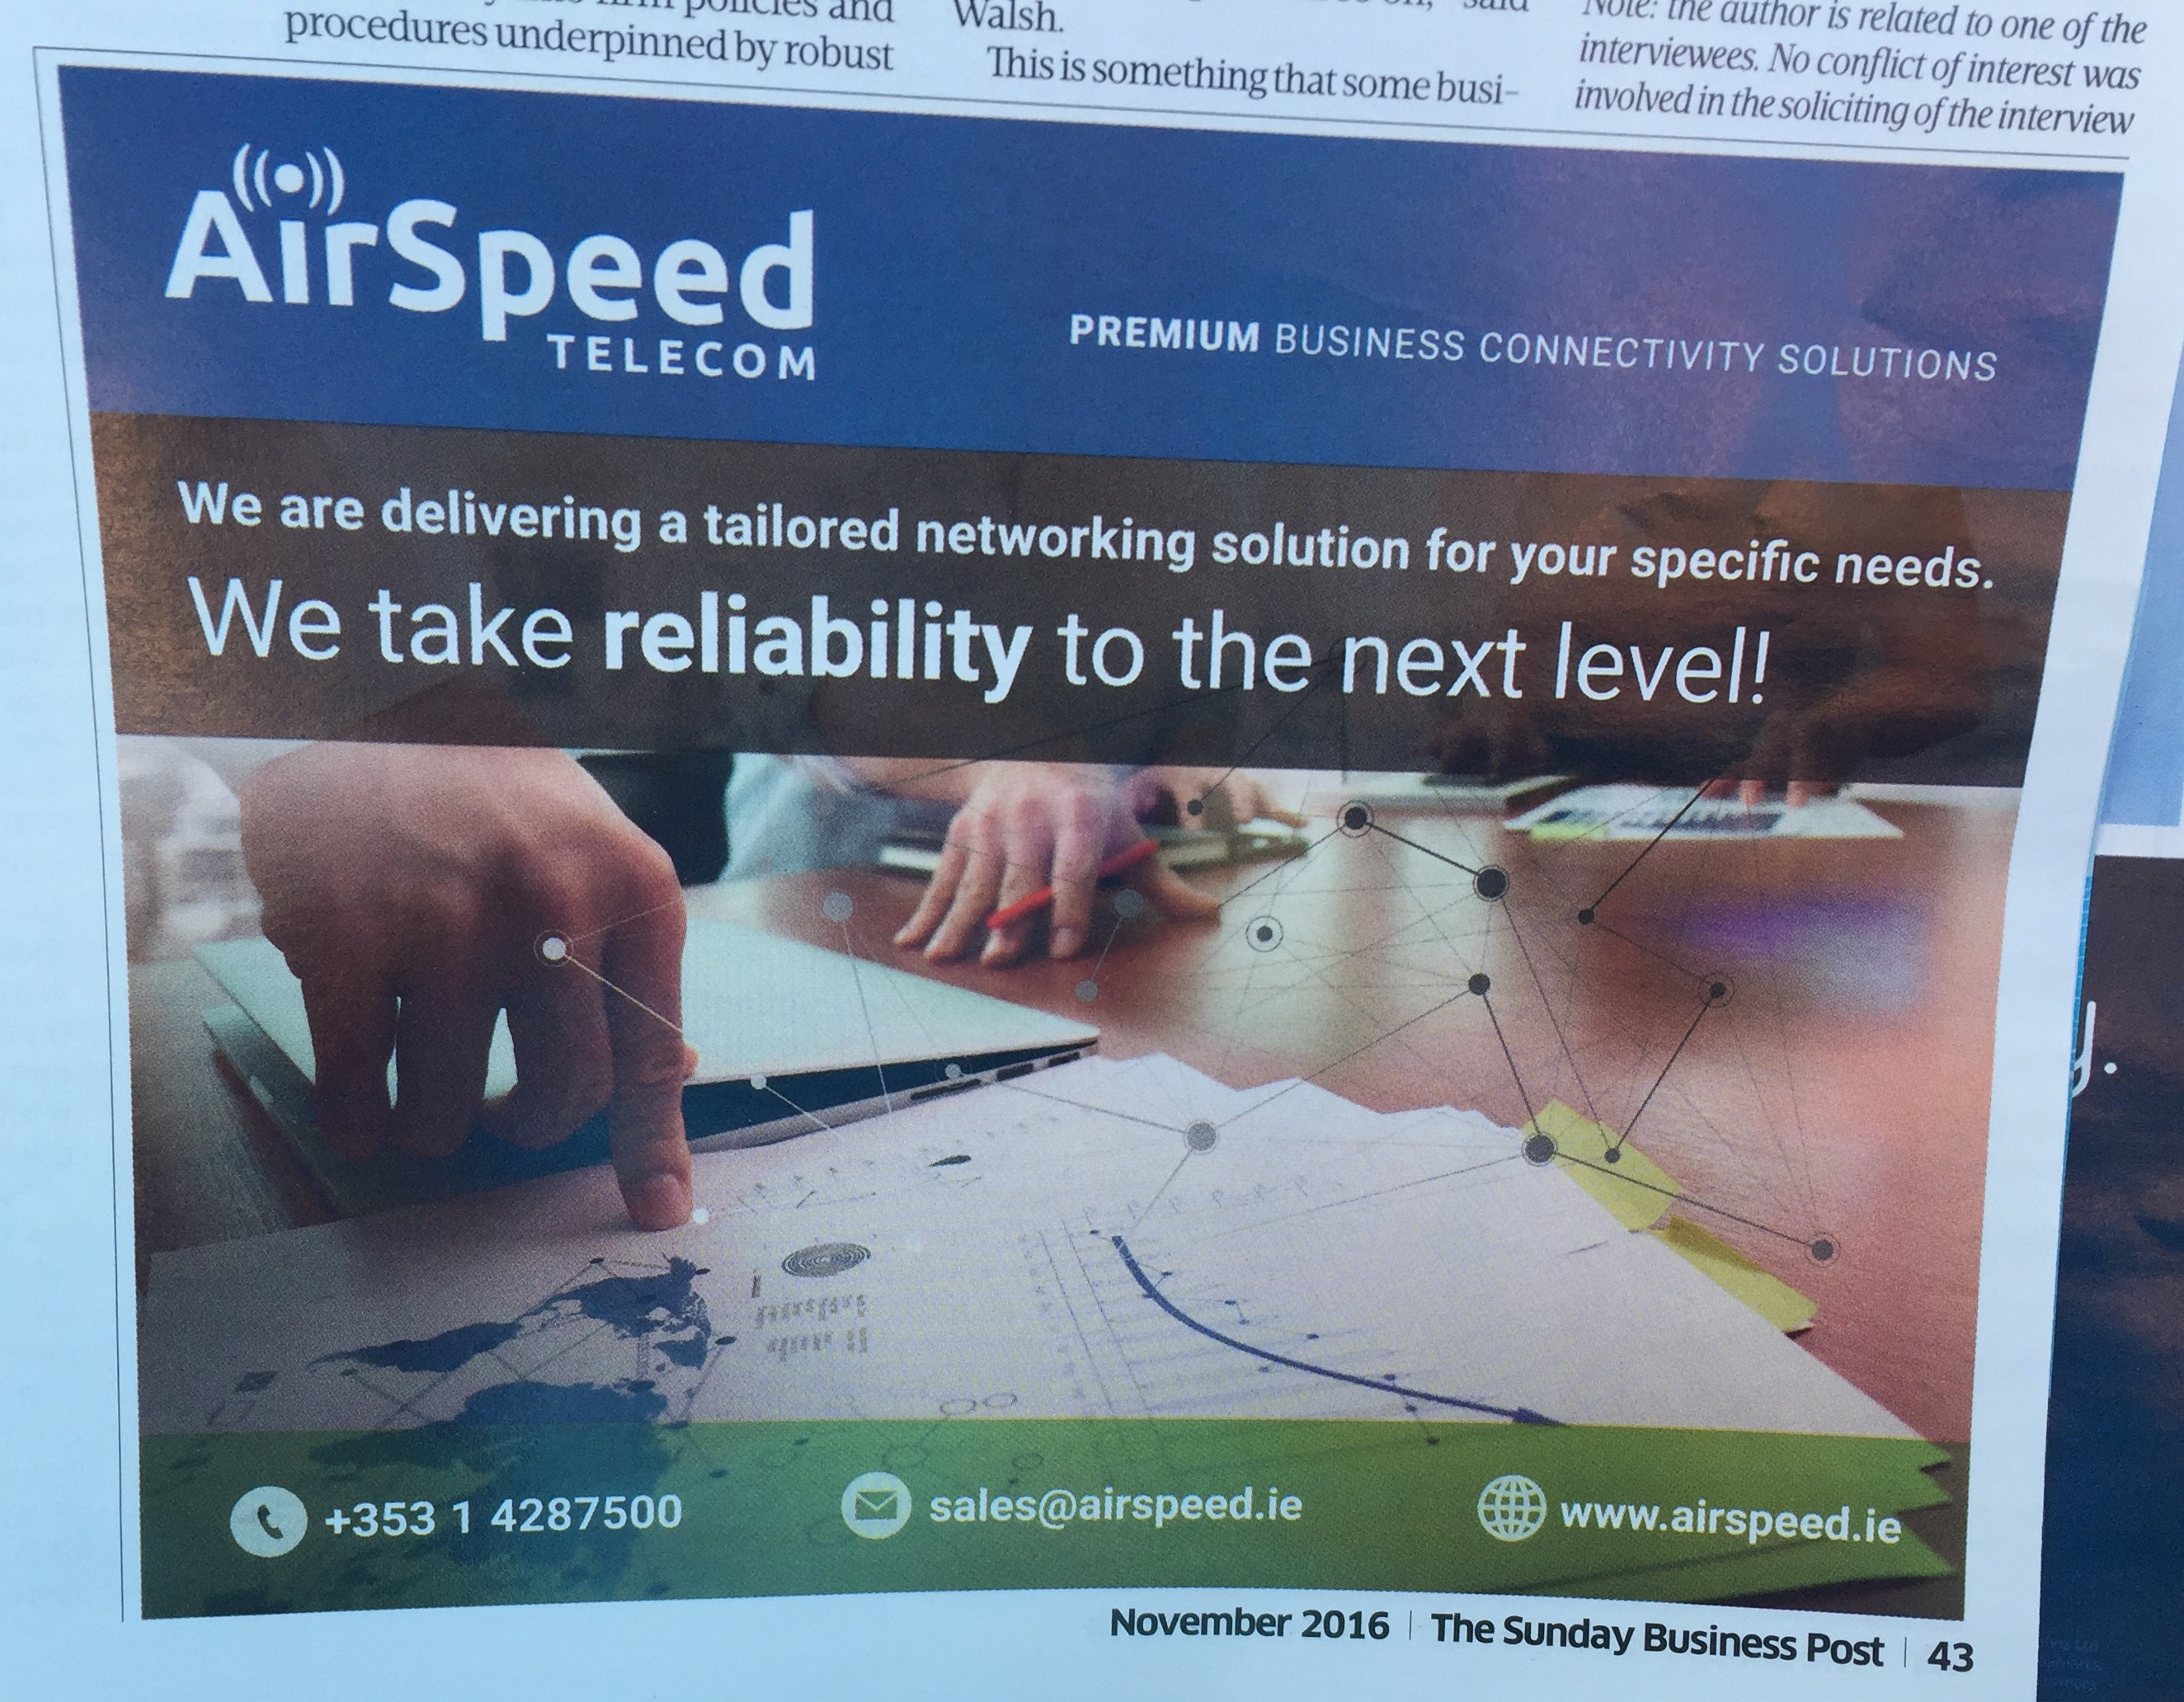 Airspeed telecom – we take reliability to the next level